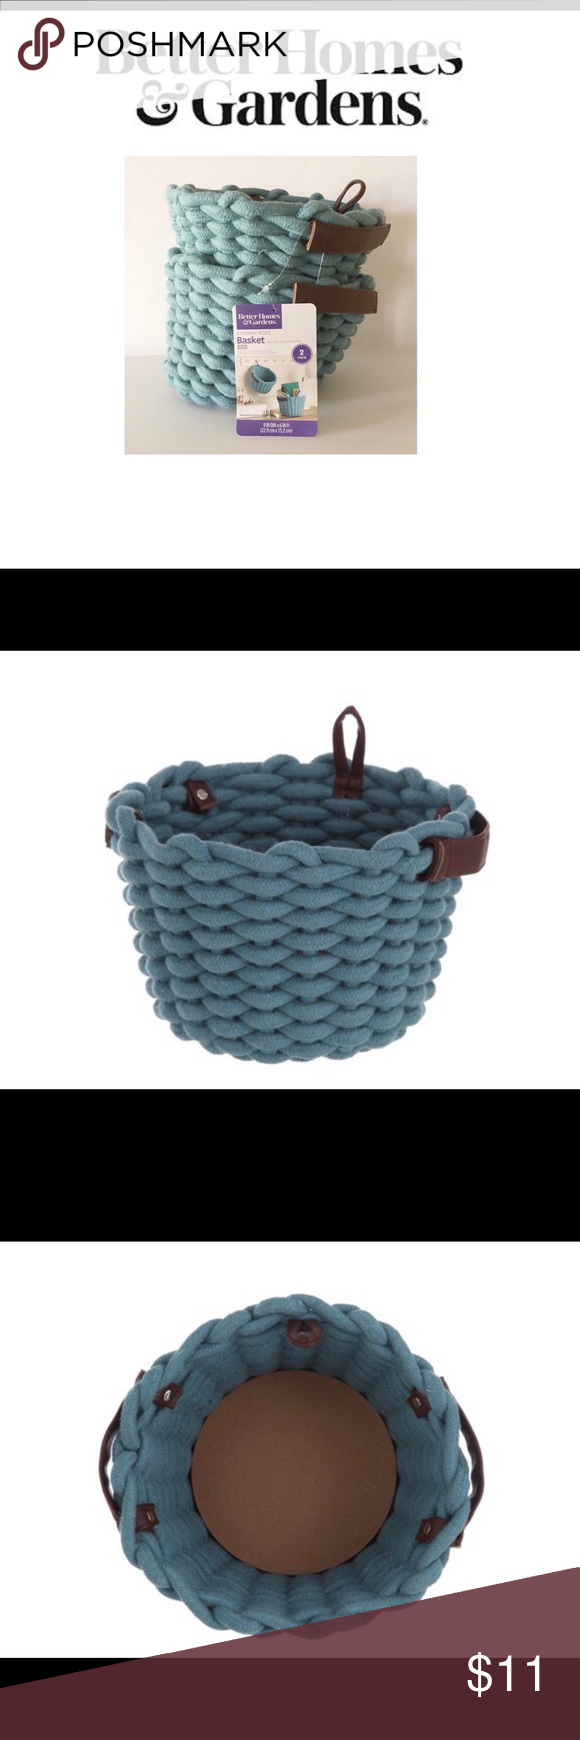 eb2bccda47ad2a6002ea478b68e431d0 - Better Homes And Gardens Chunky Rope Basket